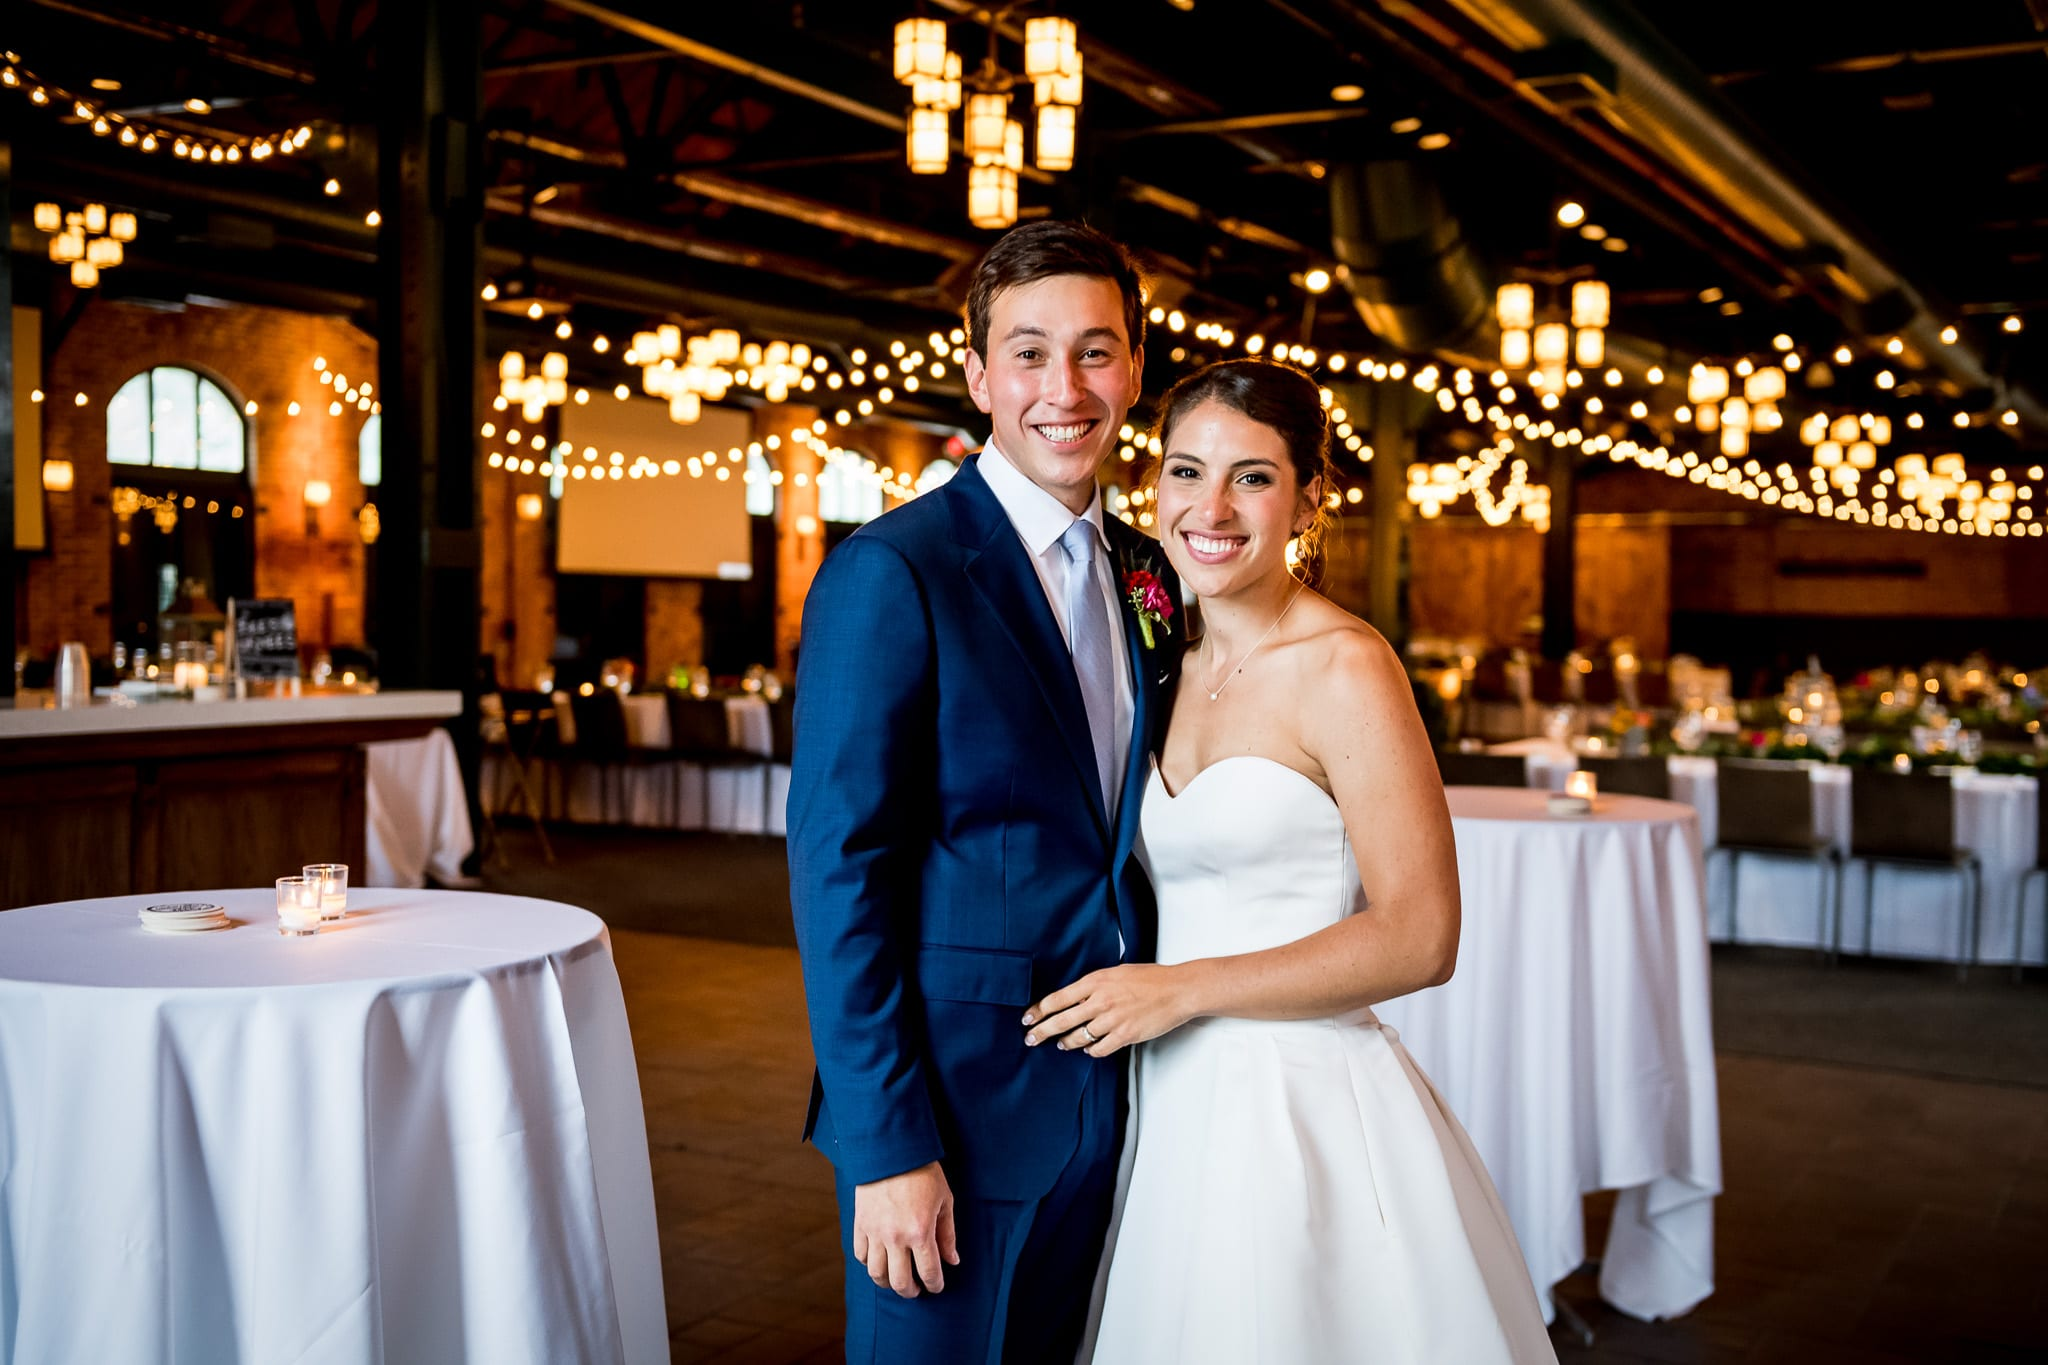 Bride and groom smiling for the camera inside the Nicollet Island Pavilion